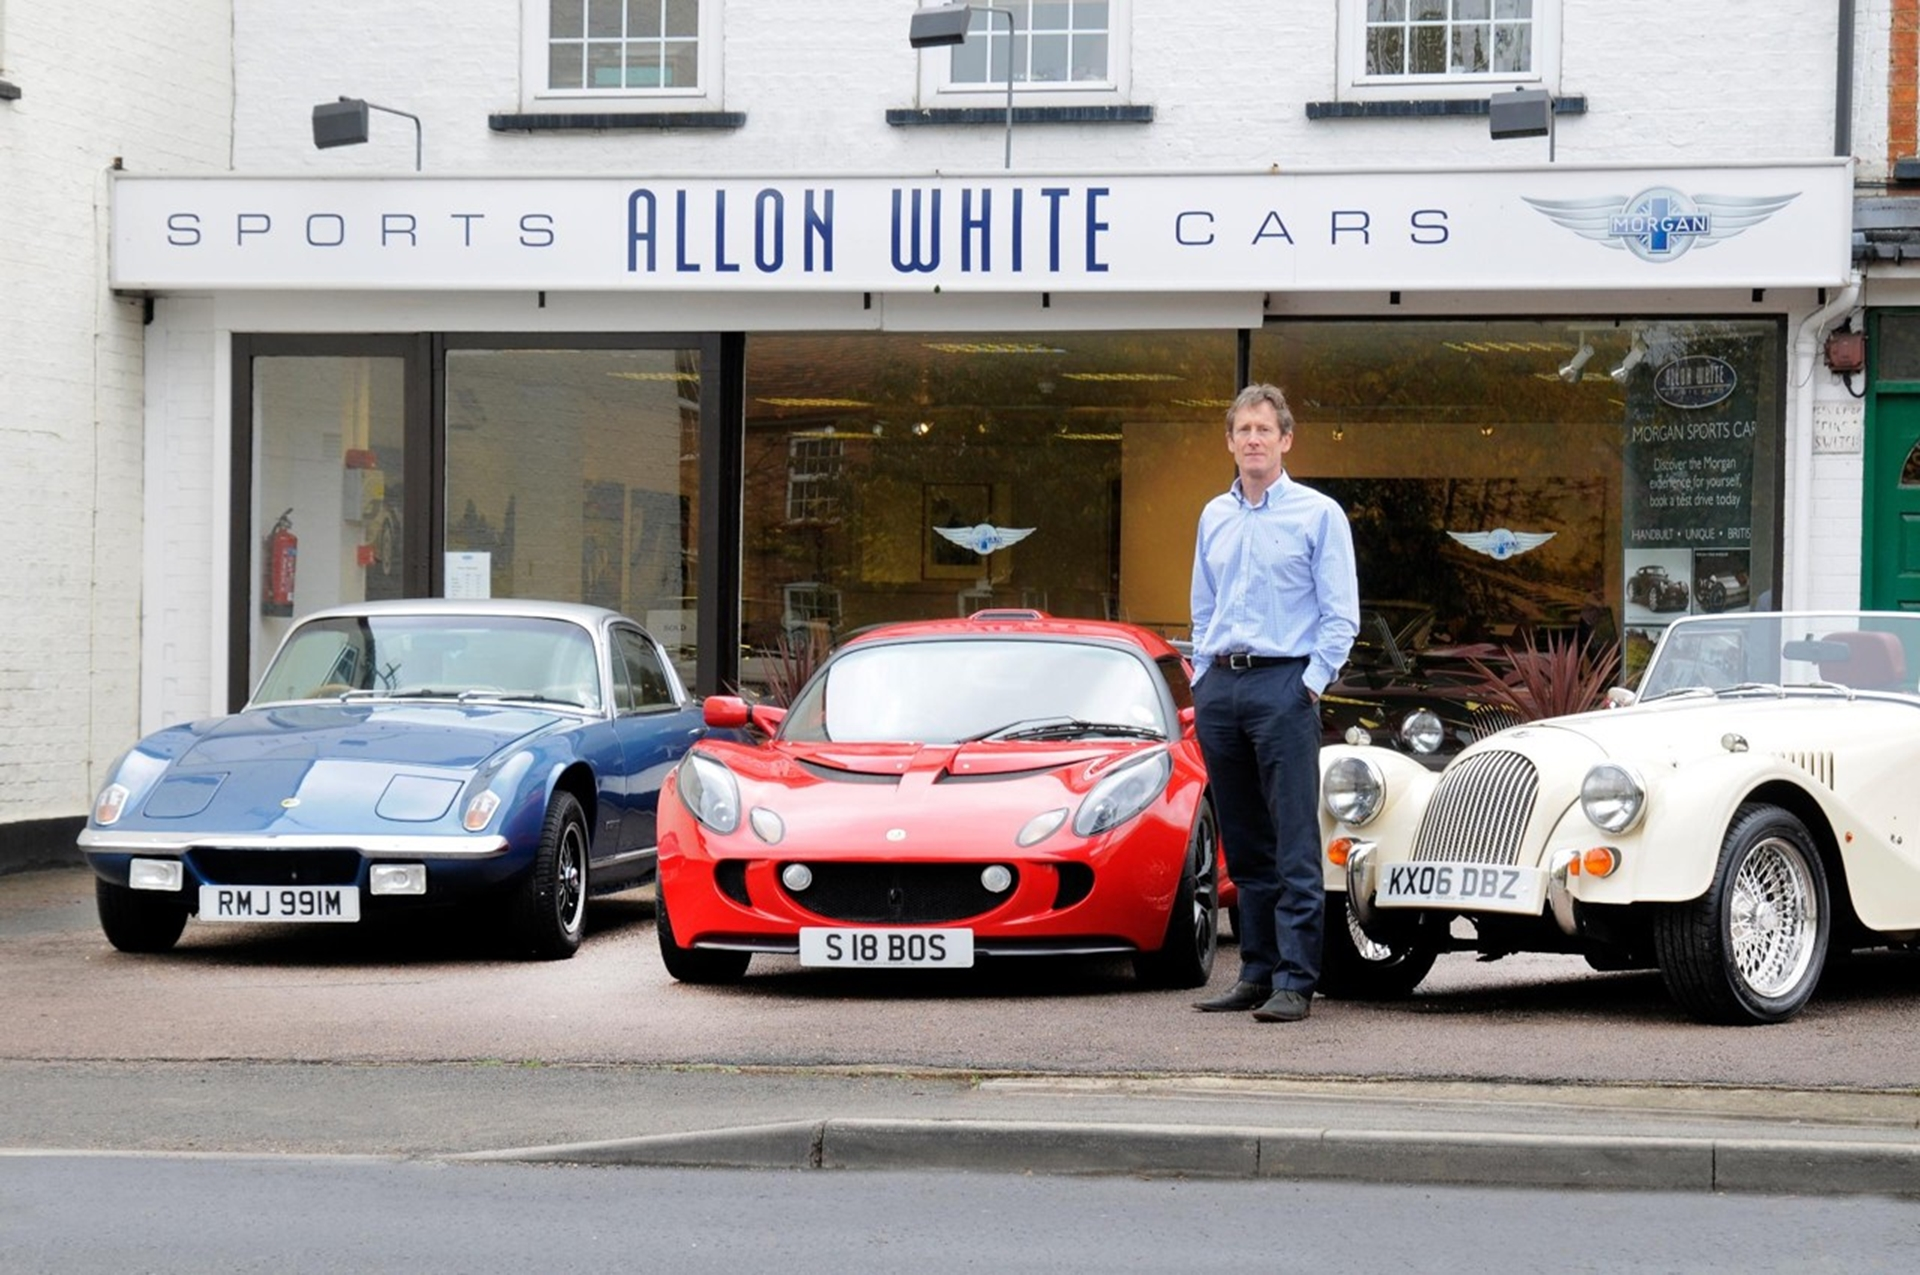 Allon White Sports Cars forecourt